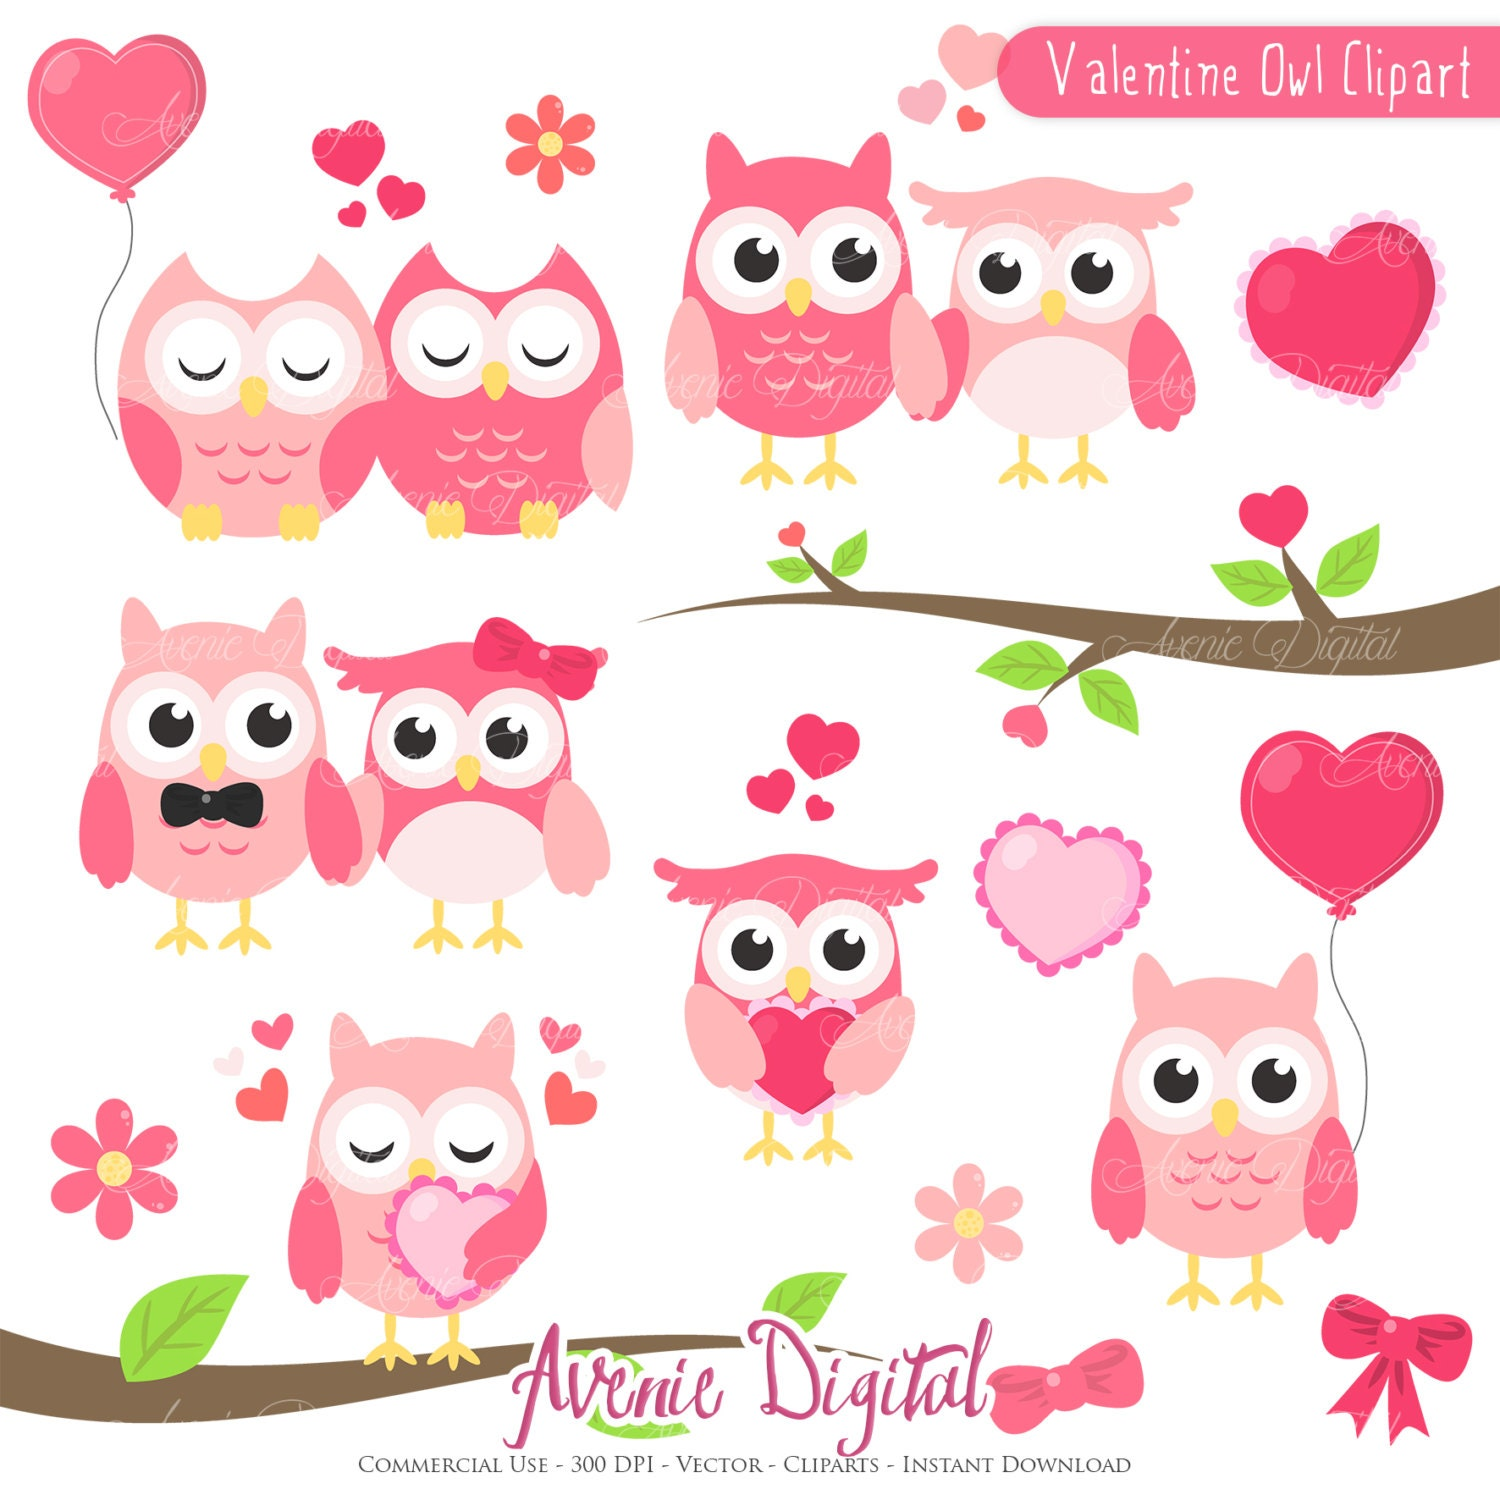 Valentines Owl Clipart Scrapbook printables, holiday clip ...